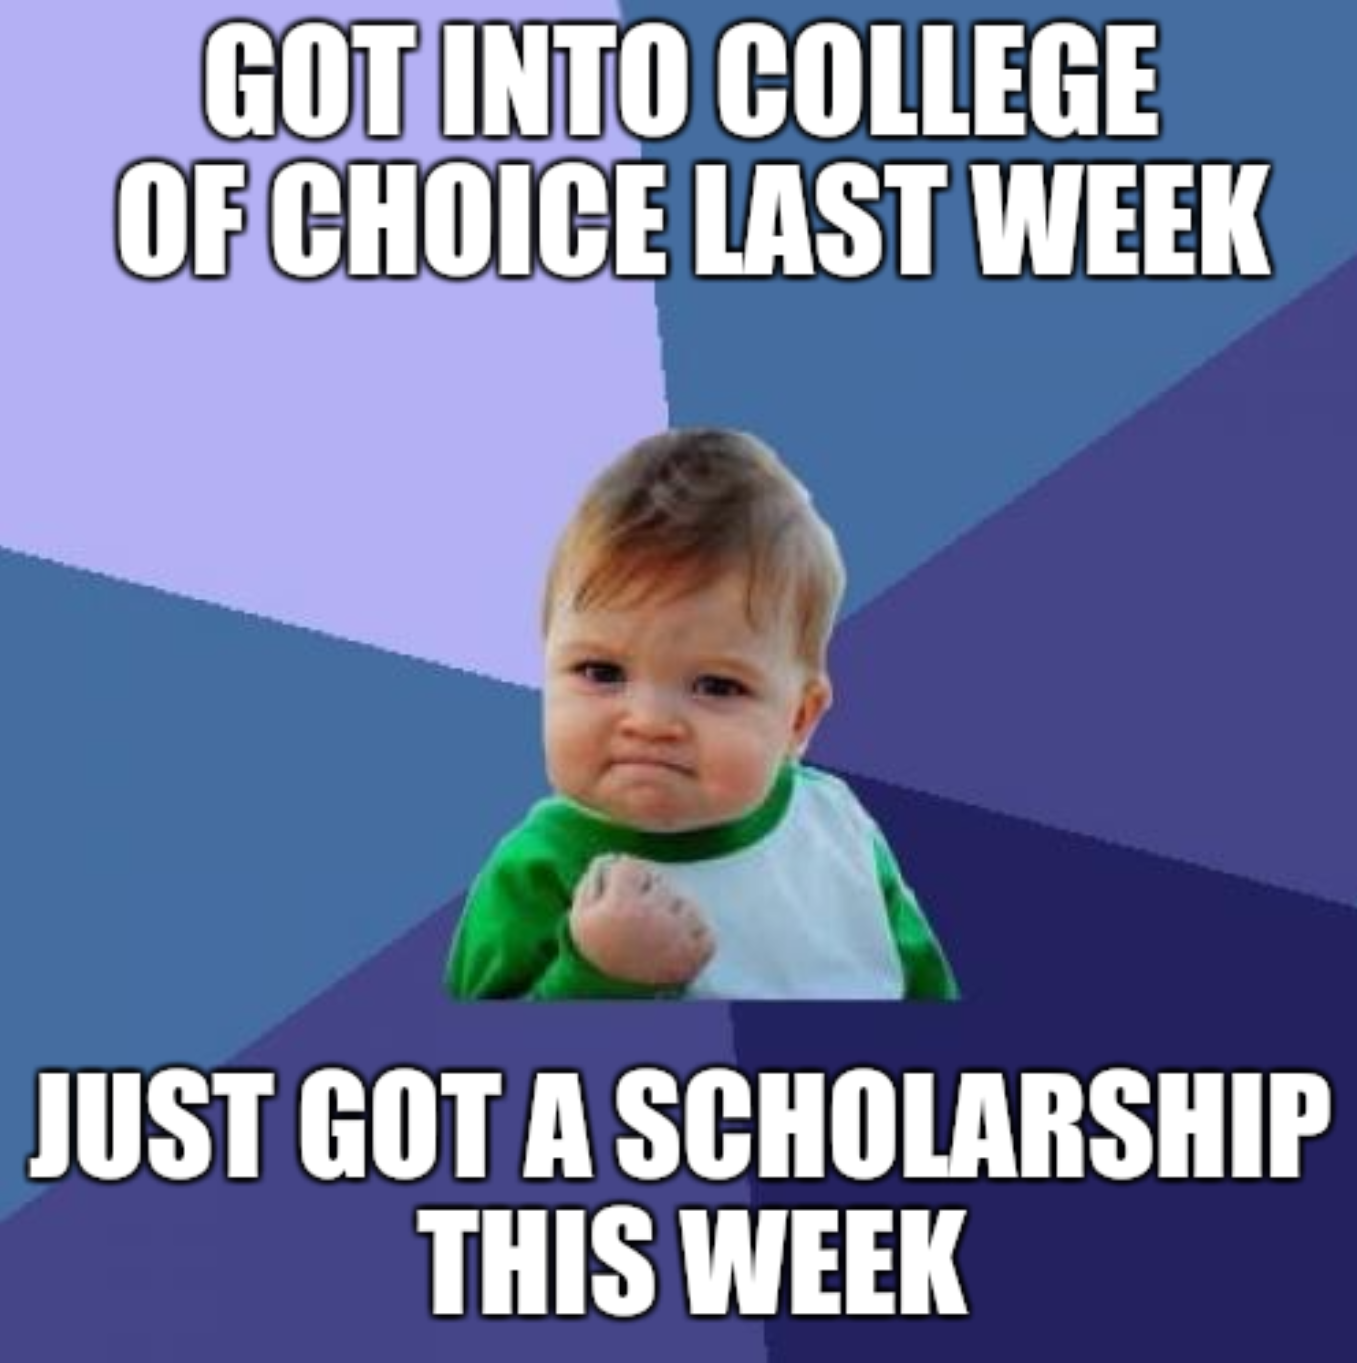 Meme of baby making fist with text about getting into college